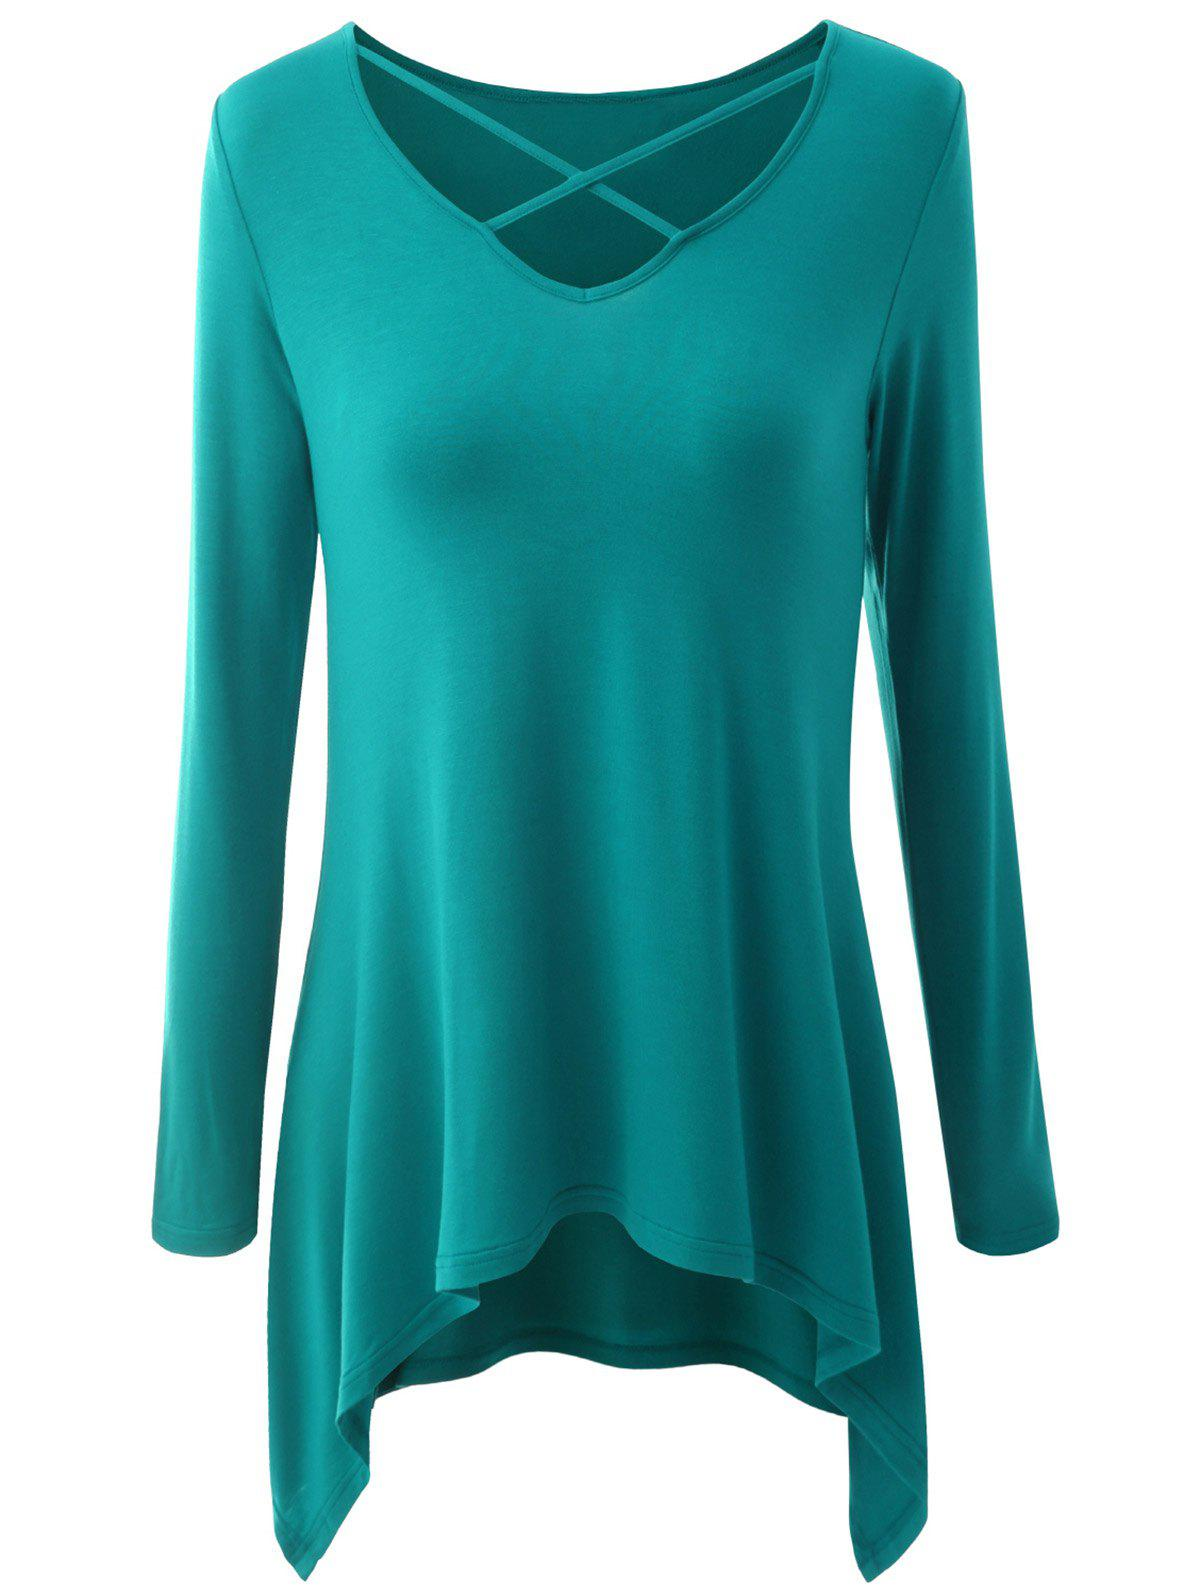 Plus Size Criss Cross Asymmetrical T-shirt - EMERALD 2XL